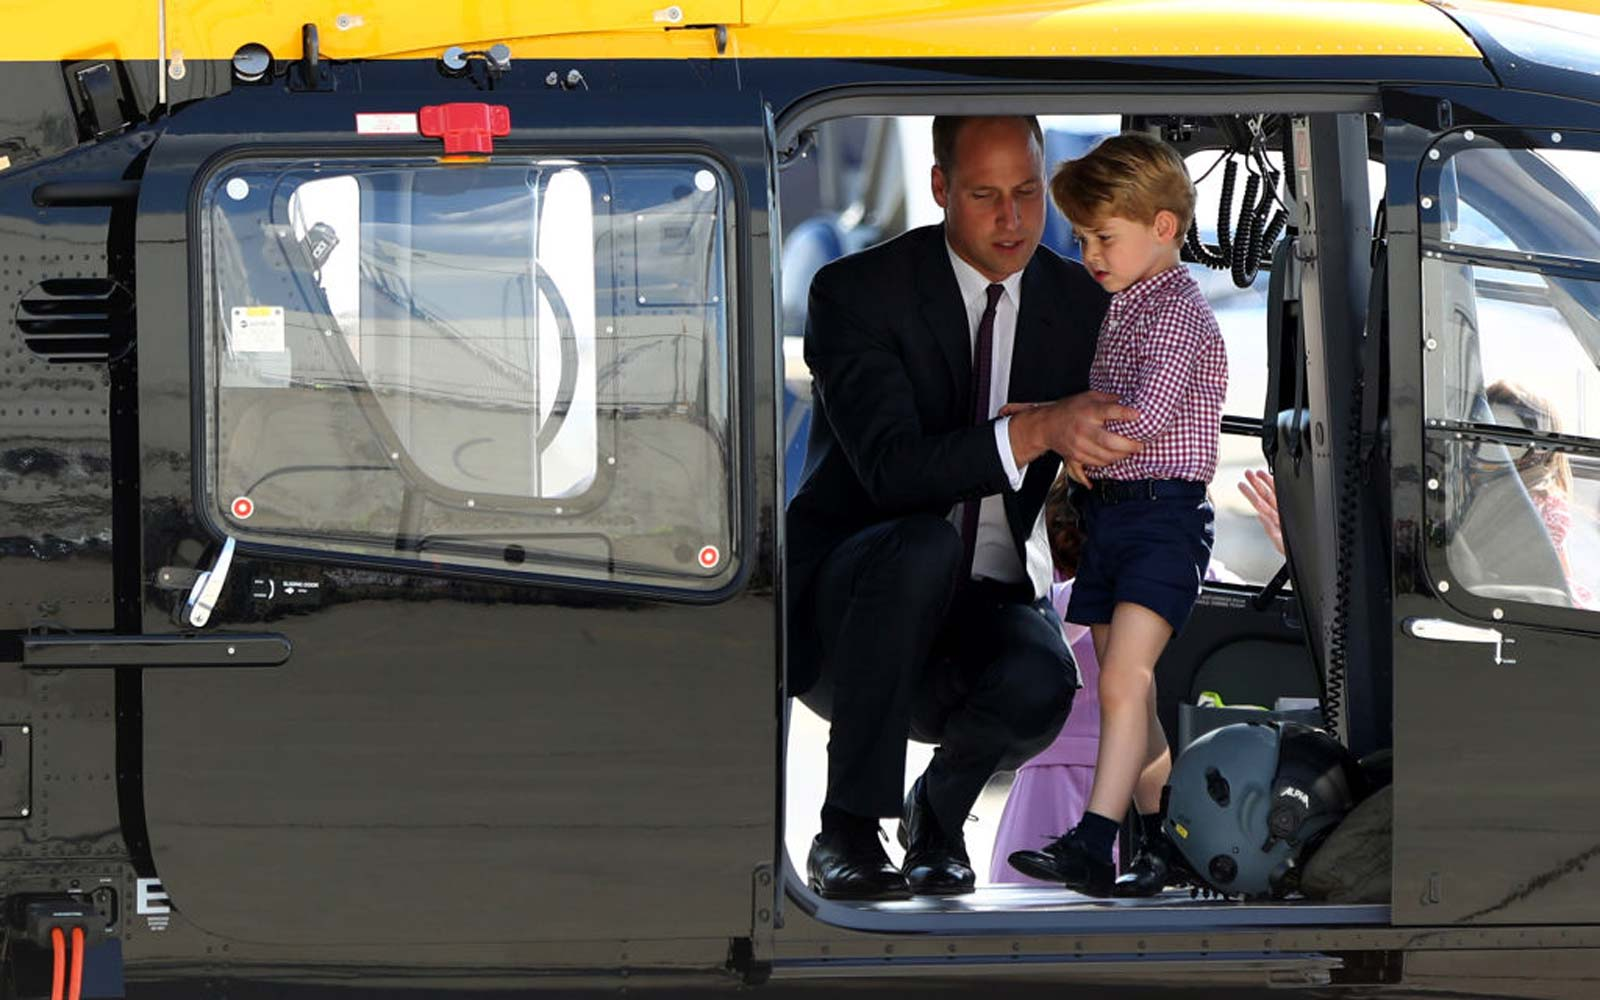 Prince William Says Prince George Knows He's 'Useless' at This Holiday Activity